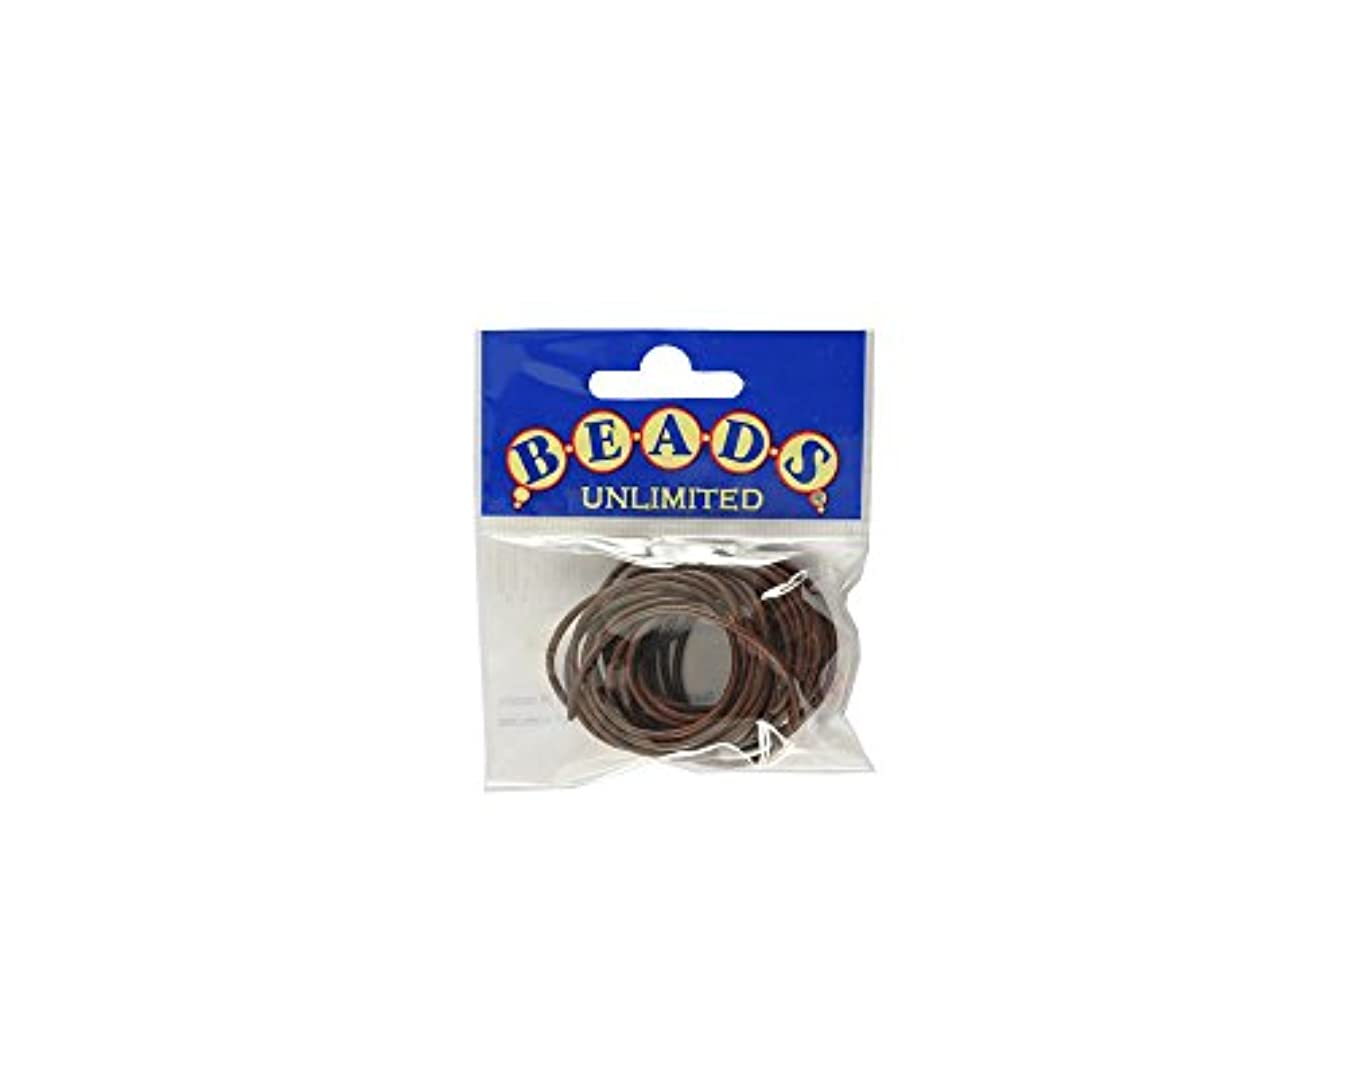 Beads Unlimited 1.5 mm Superior Leather Thong, Pack of 10 m, Brown